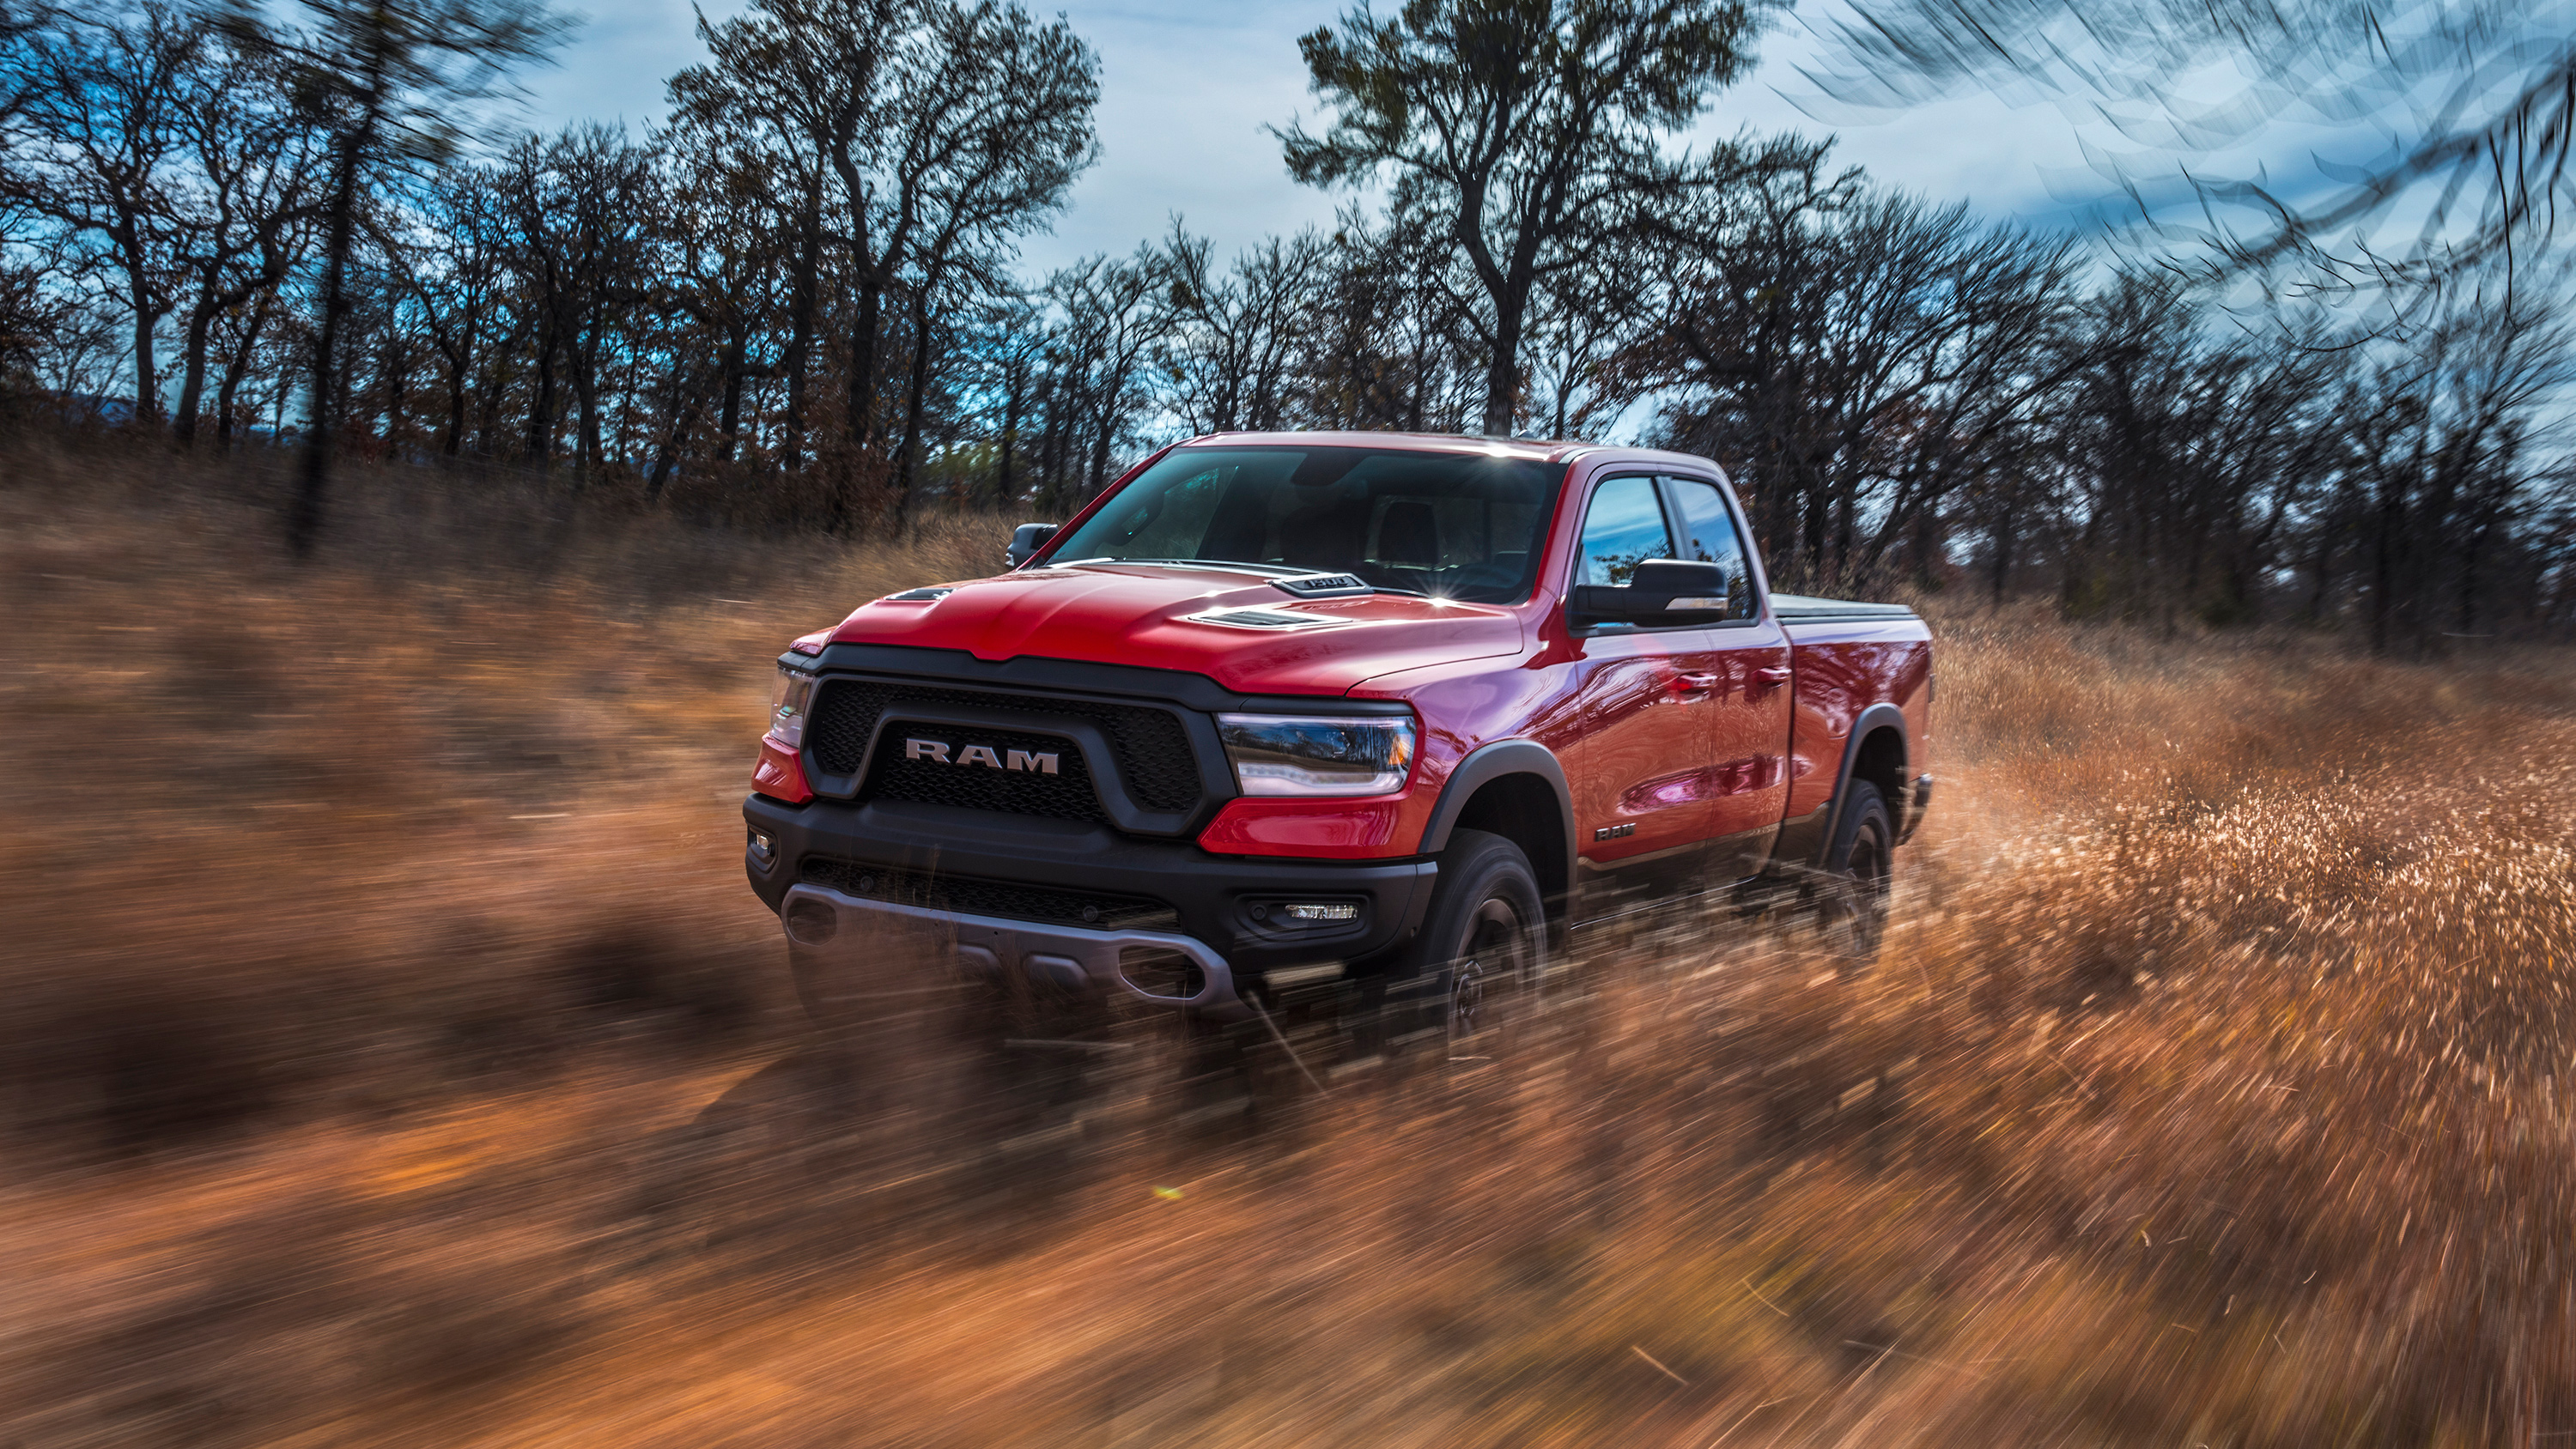 Ford Vs Chevy Trucks Off Road >> 2019 Ram 1500 Rebel Quad Cab 2 Wallpaper | HD Car Wallpapers | ID #9407